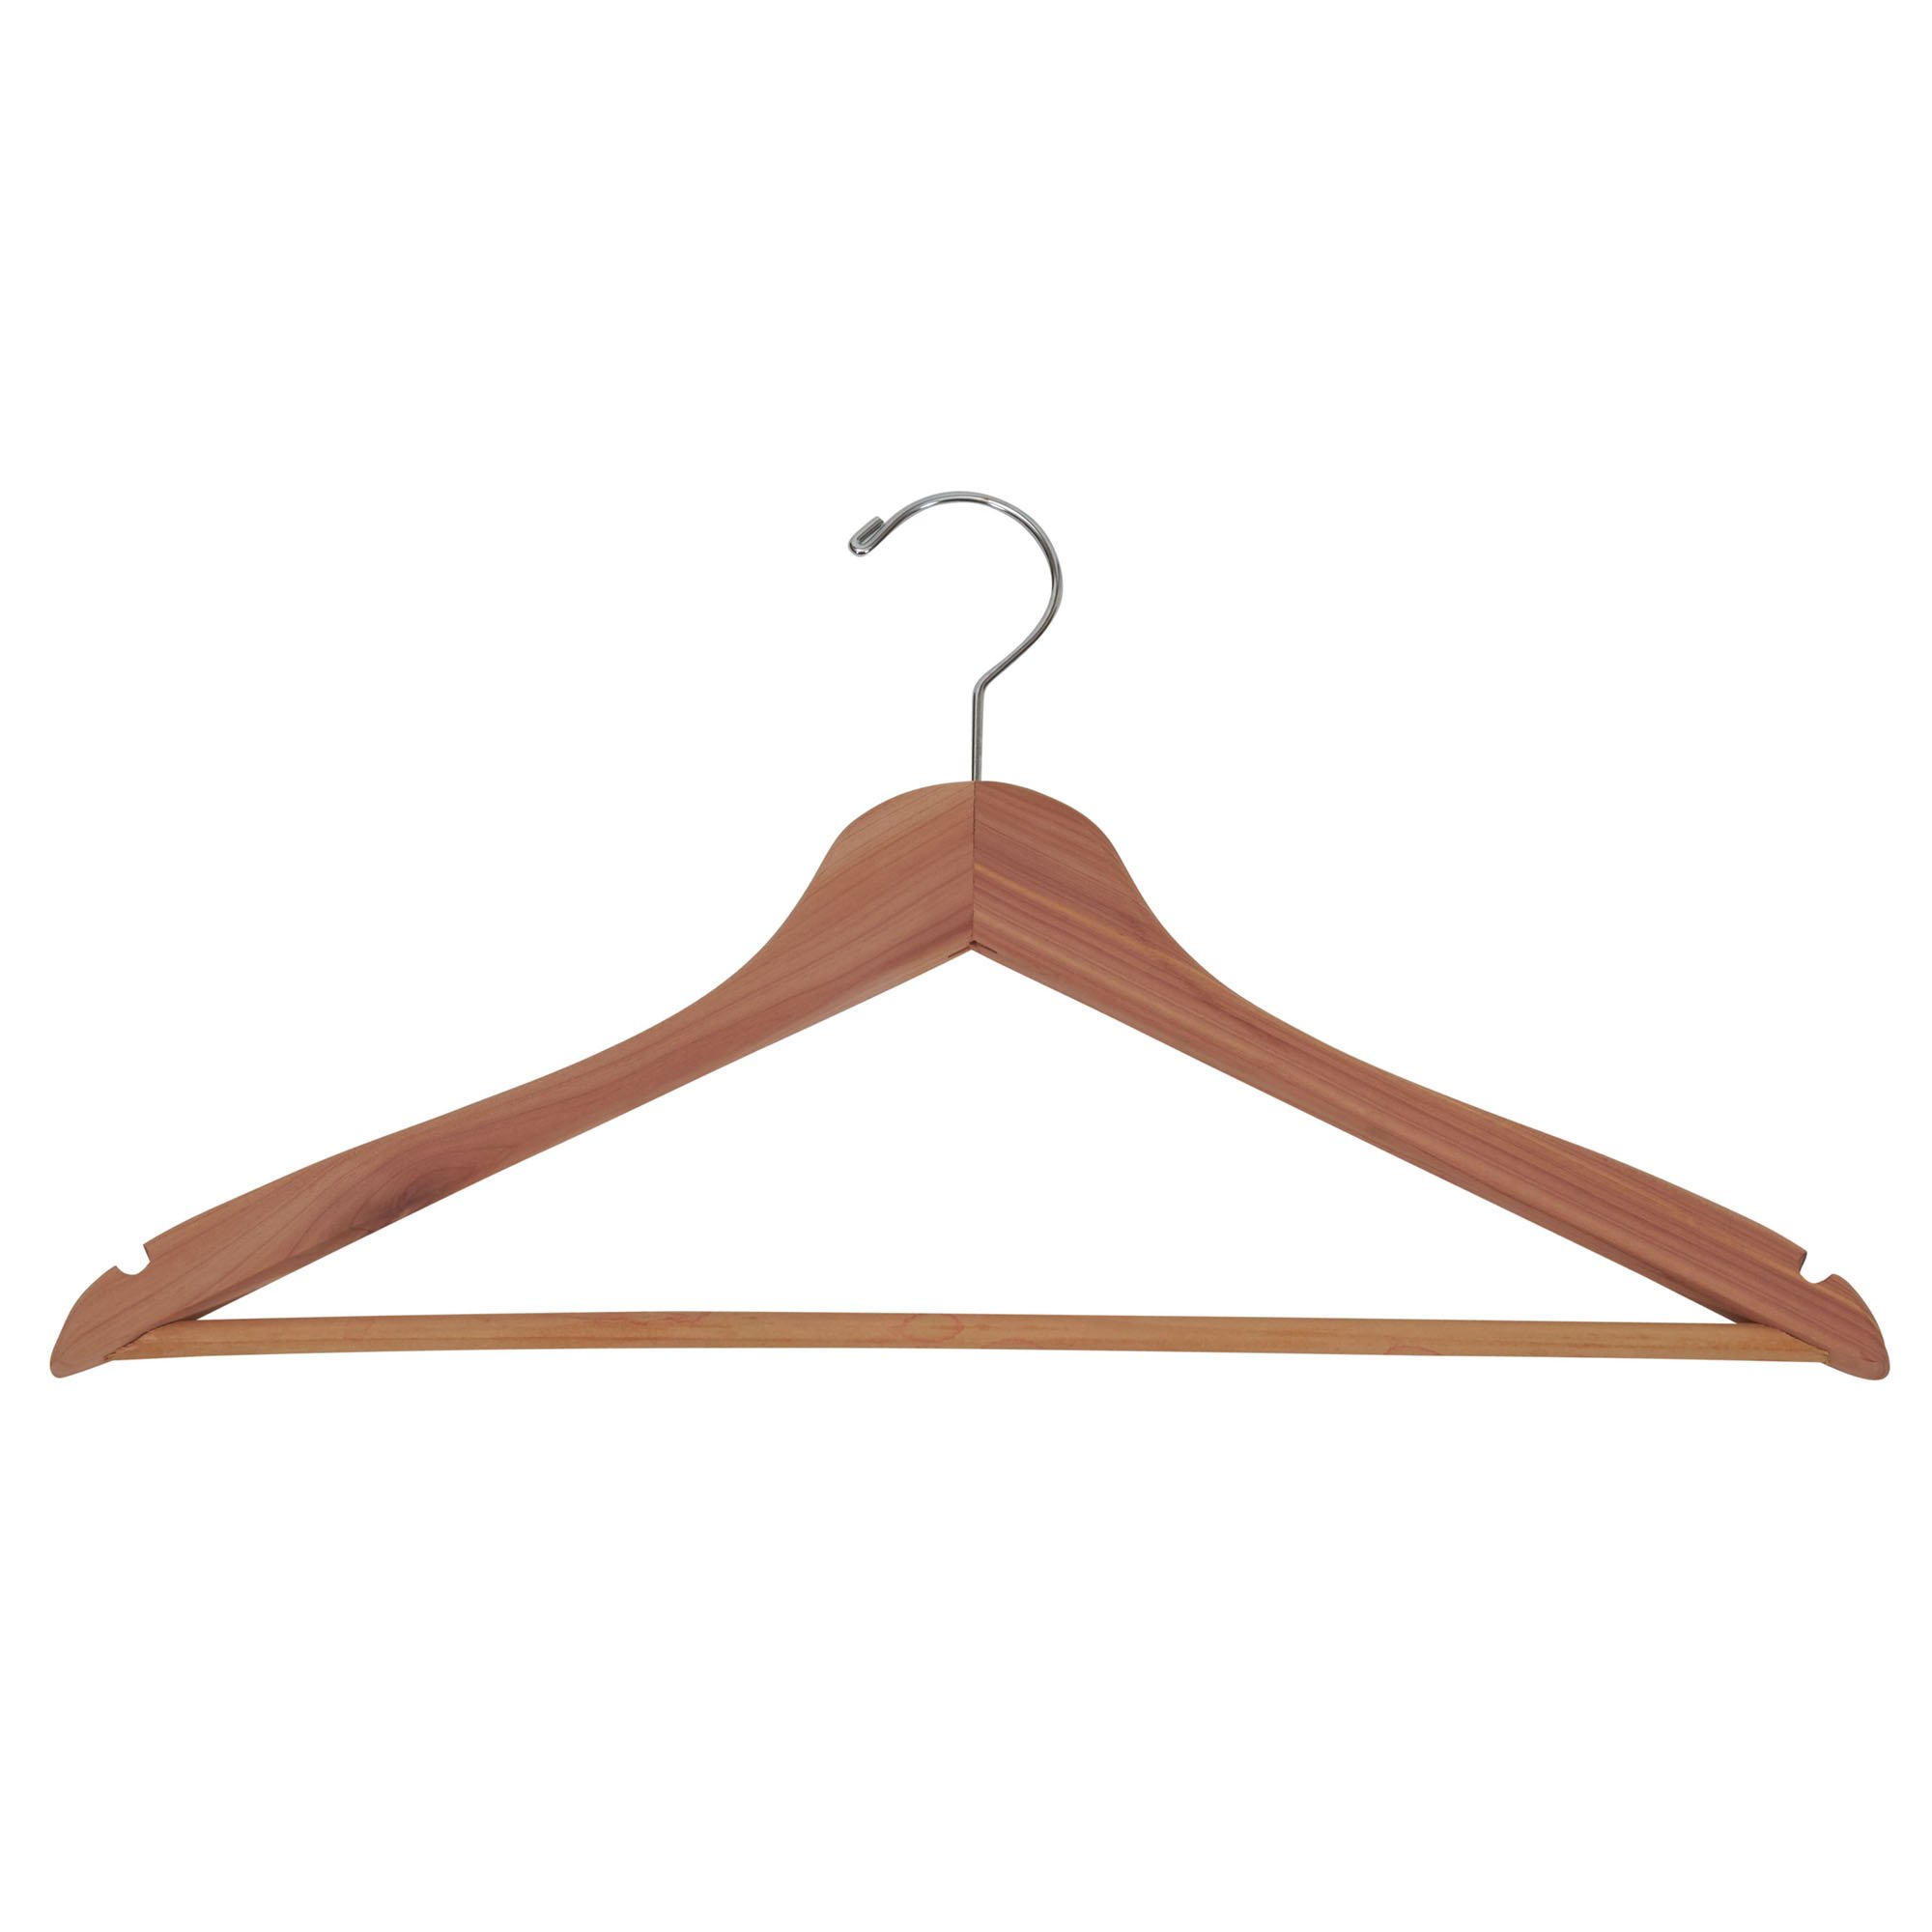 Household Essentials 26140 CedarFresh Red Cedar Wood Clothes Hangers with Fixed Bar and Swivel Hook - Set of 4 by Household Essentials (Image #4)